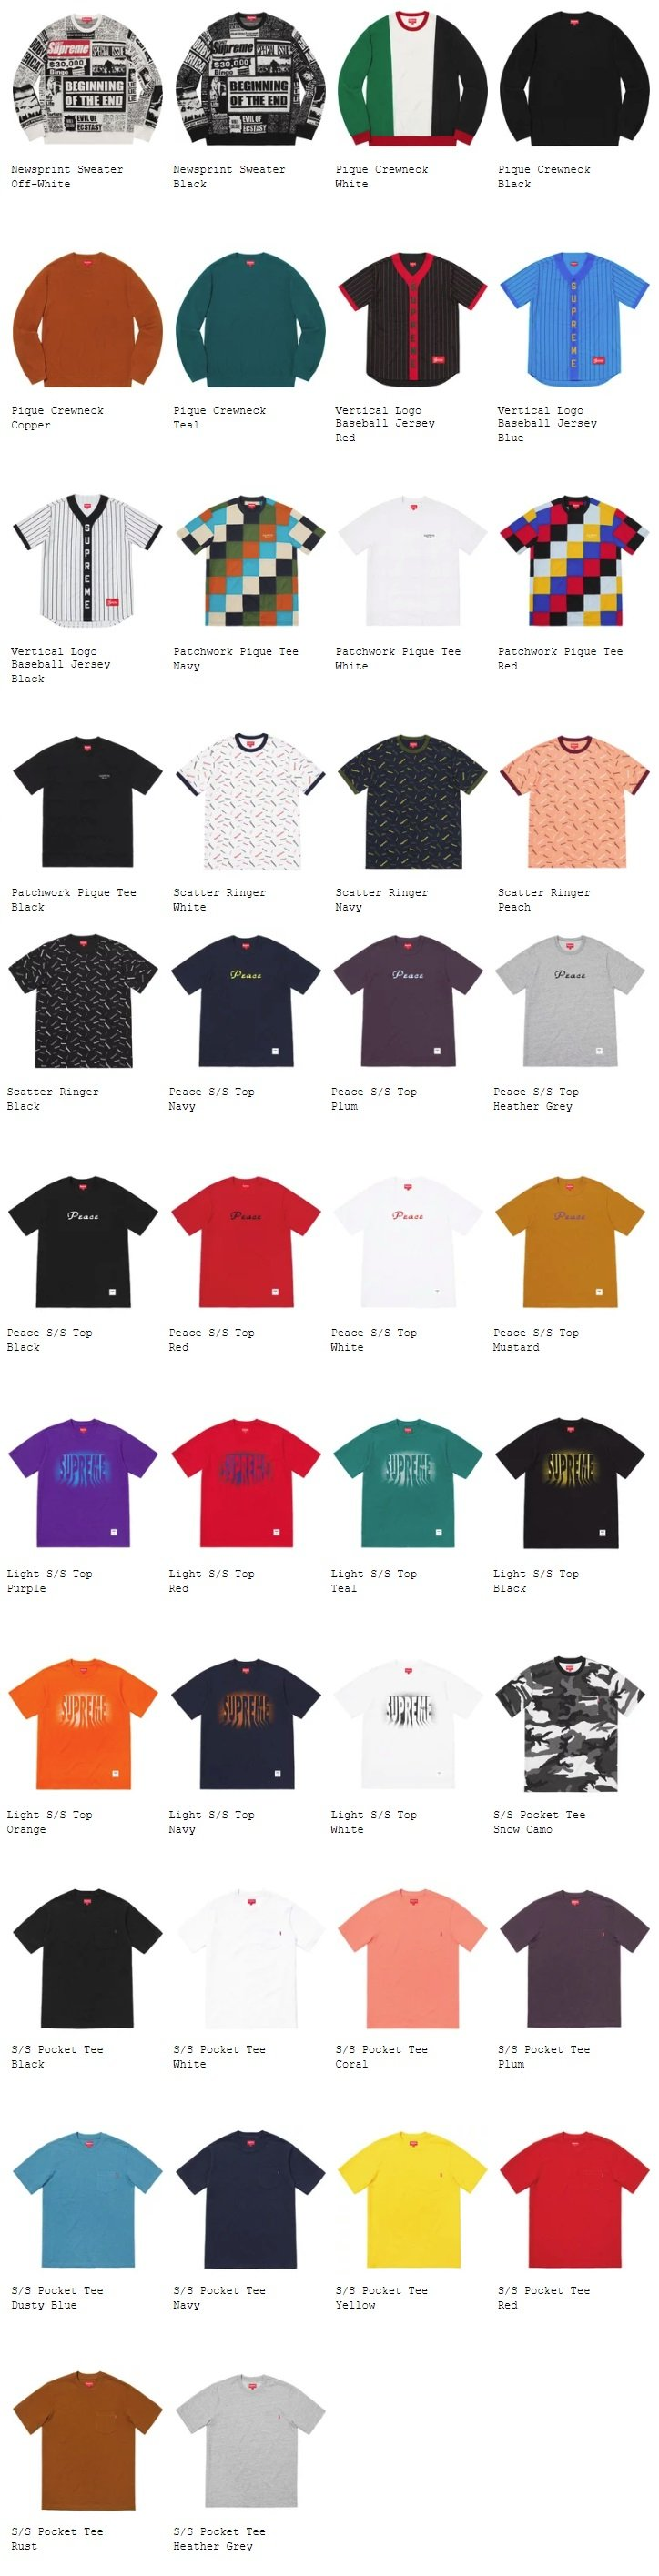 supreme-18aw-launch-20180818-week1-release-items-tops-sweater